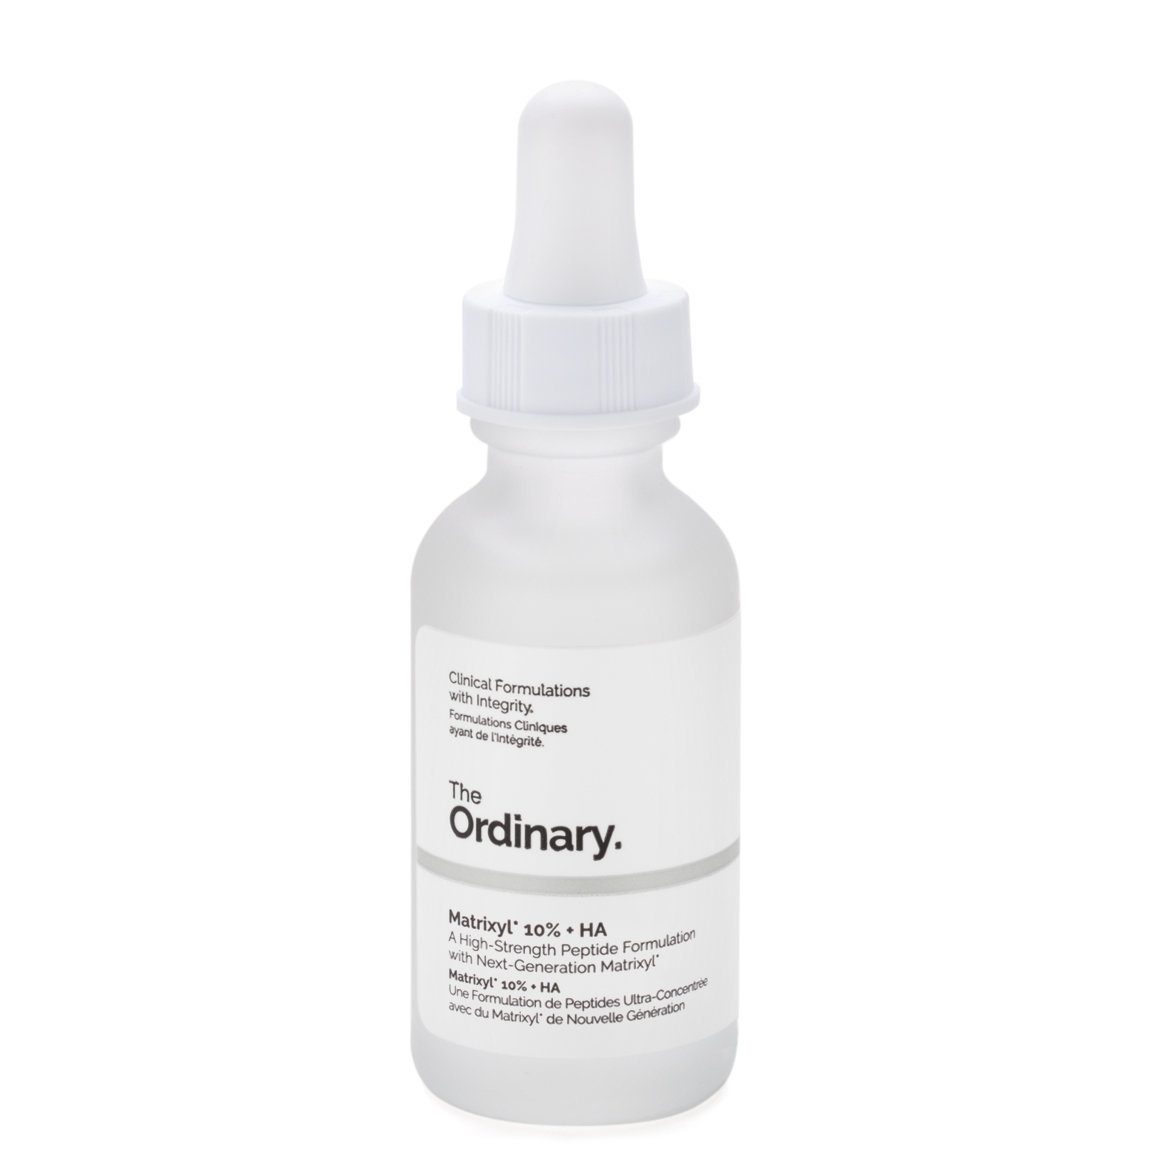 The Ordinary. Matrixyl 10% + HA product smear.